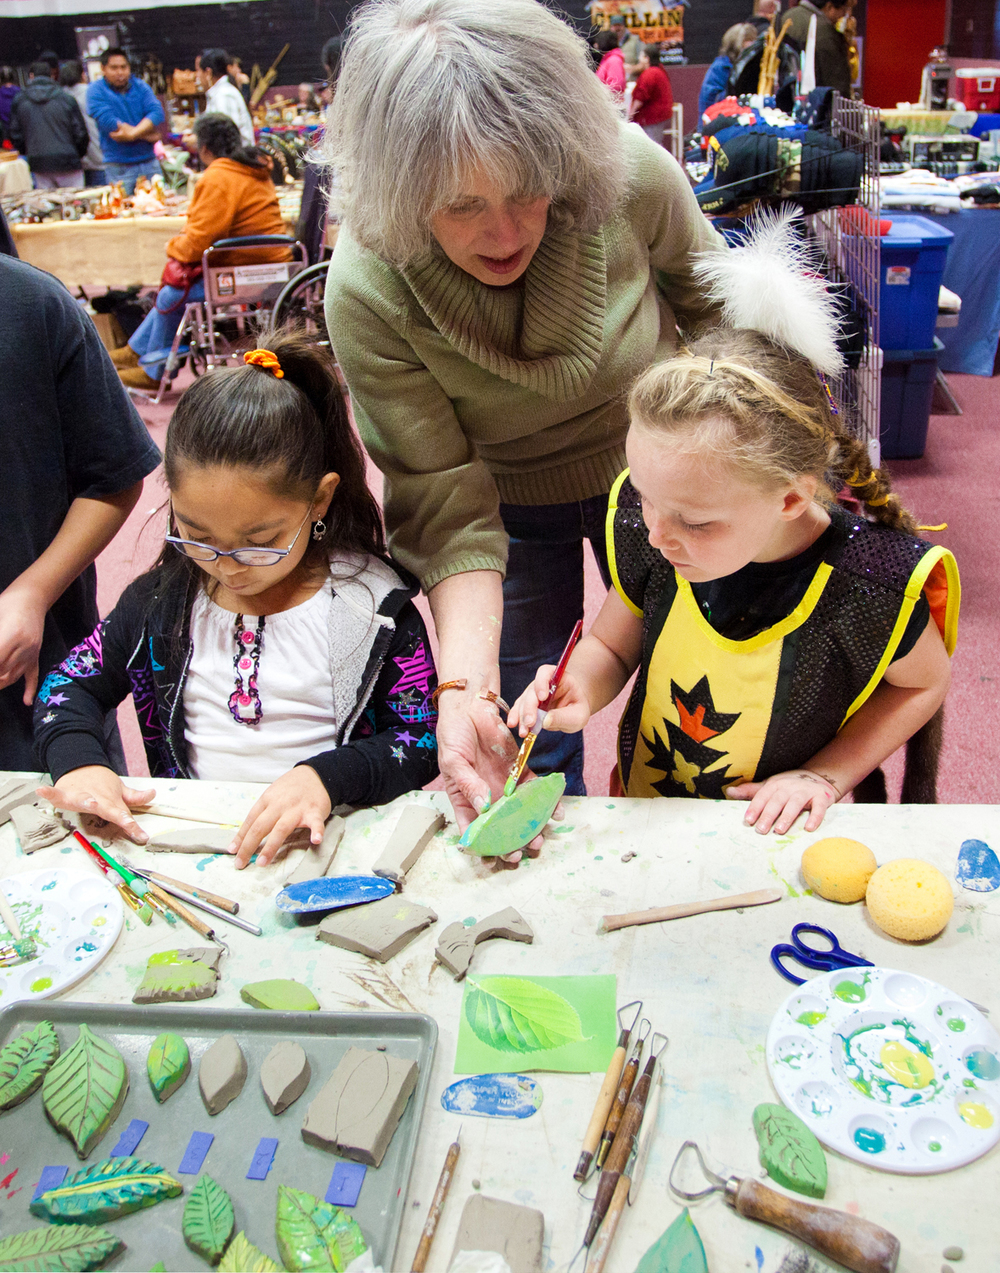 Painting leaves at the Chemawa Powow